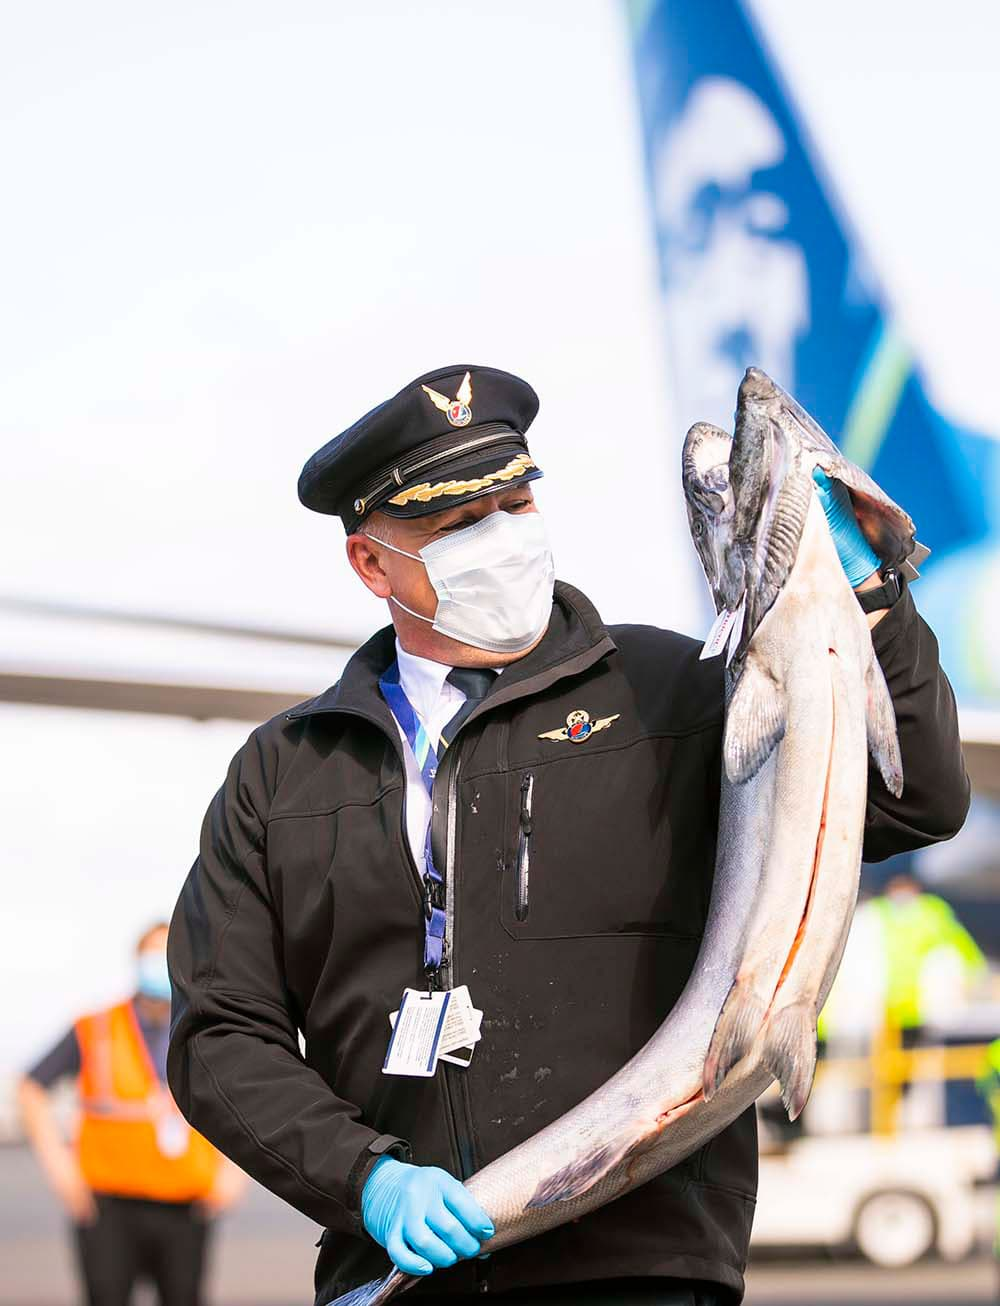 A royal toast to the fish we honor most! The salmon king arrives in Seattle